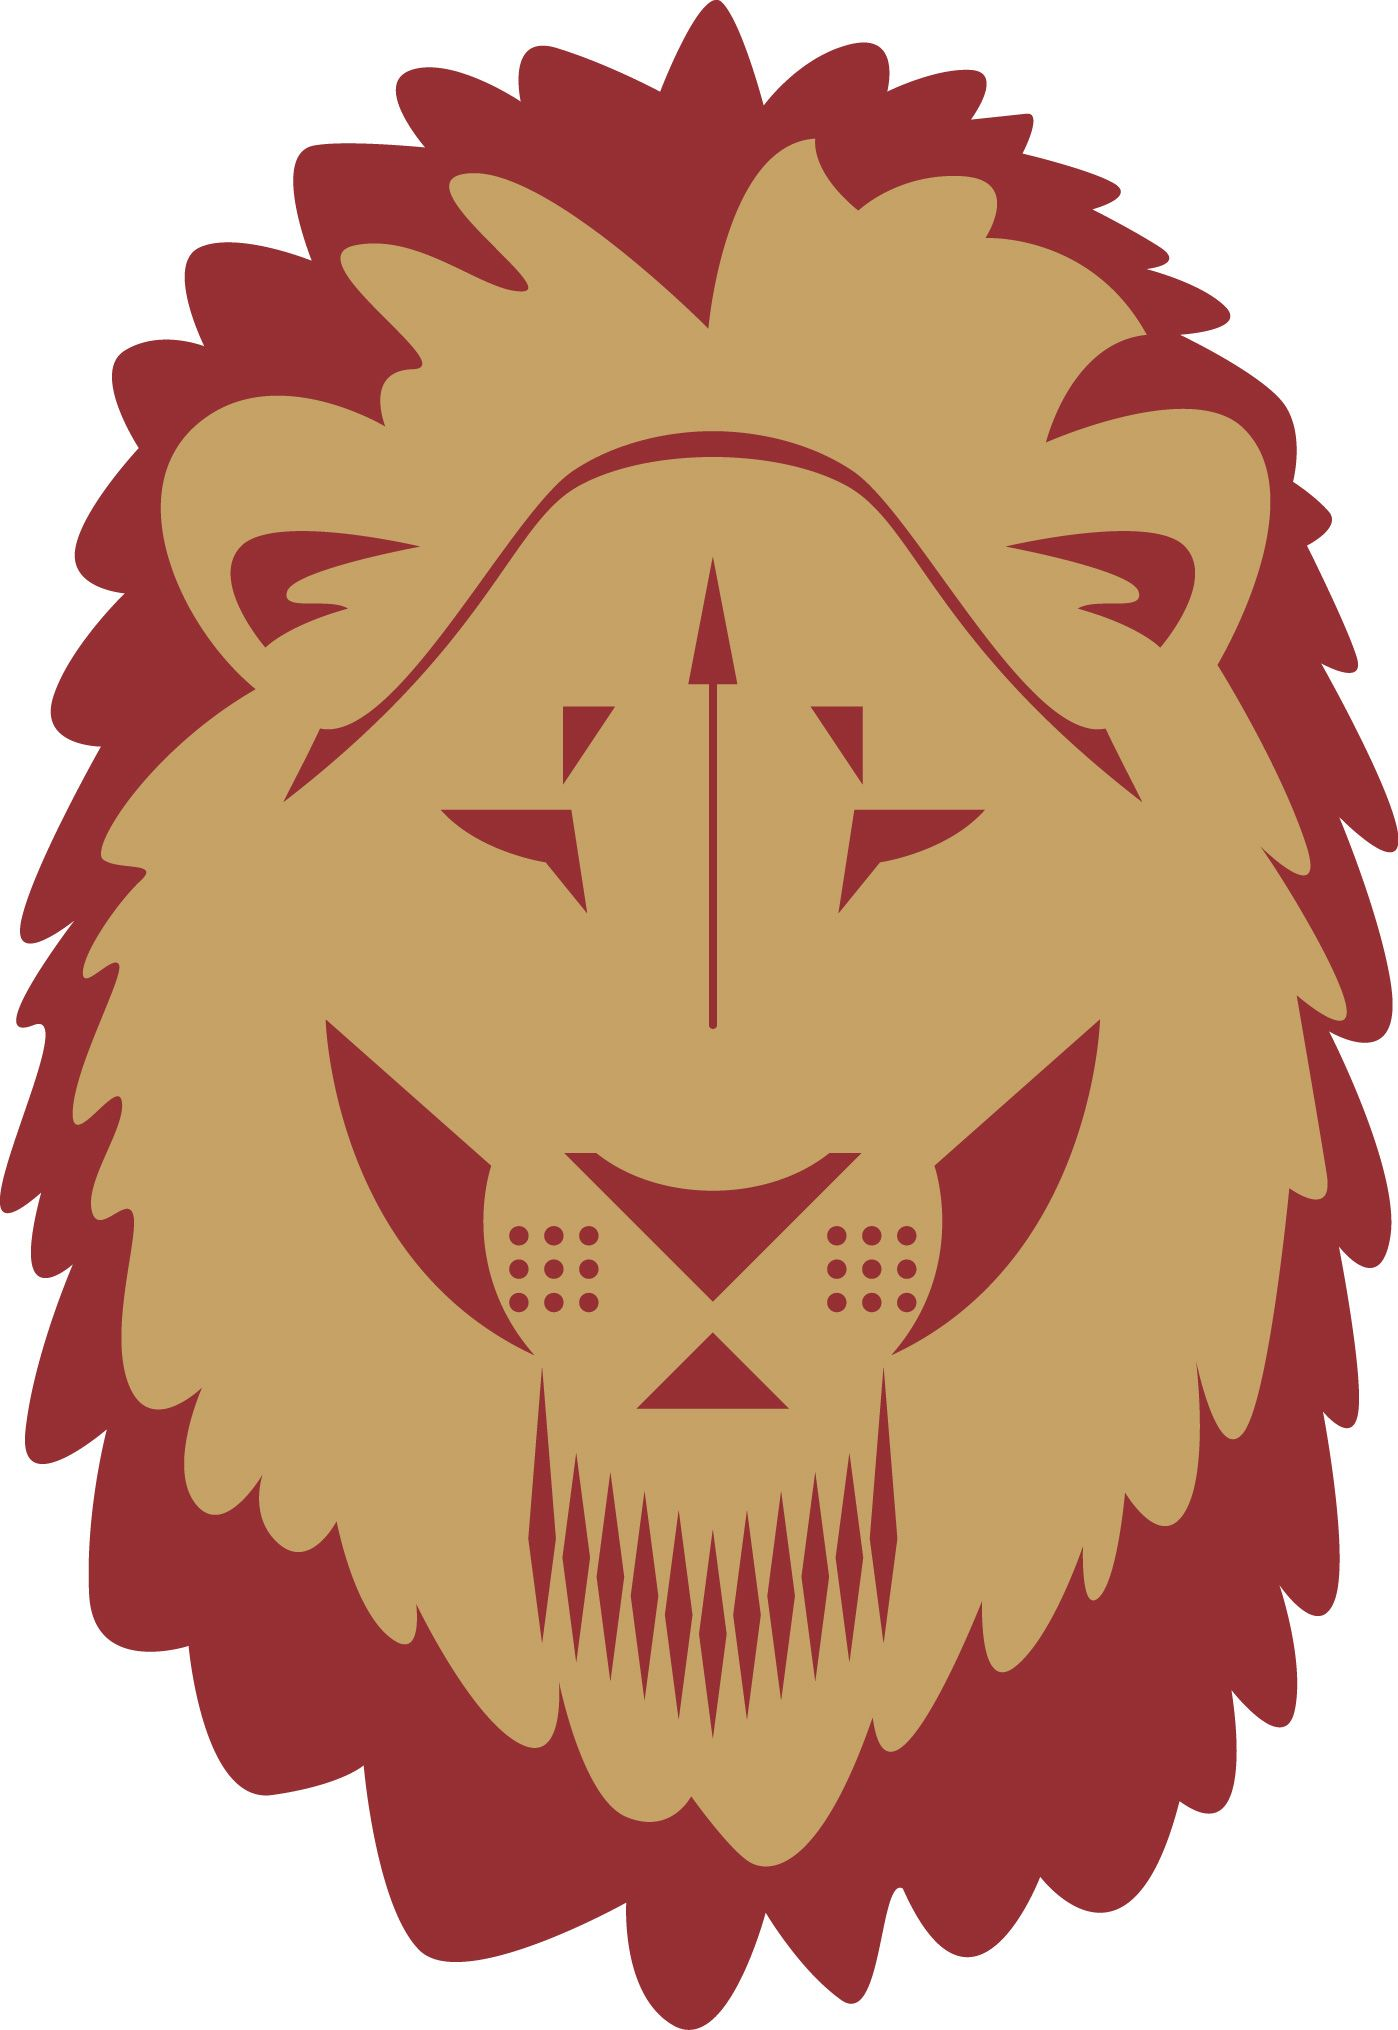 Christian symbols lion a lion represents watchfulness and christian symbols lion a lion represents watchfulness and alertness it also symbolizes christ buycottarizona Images